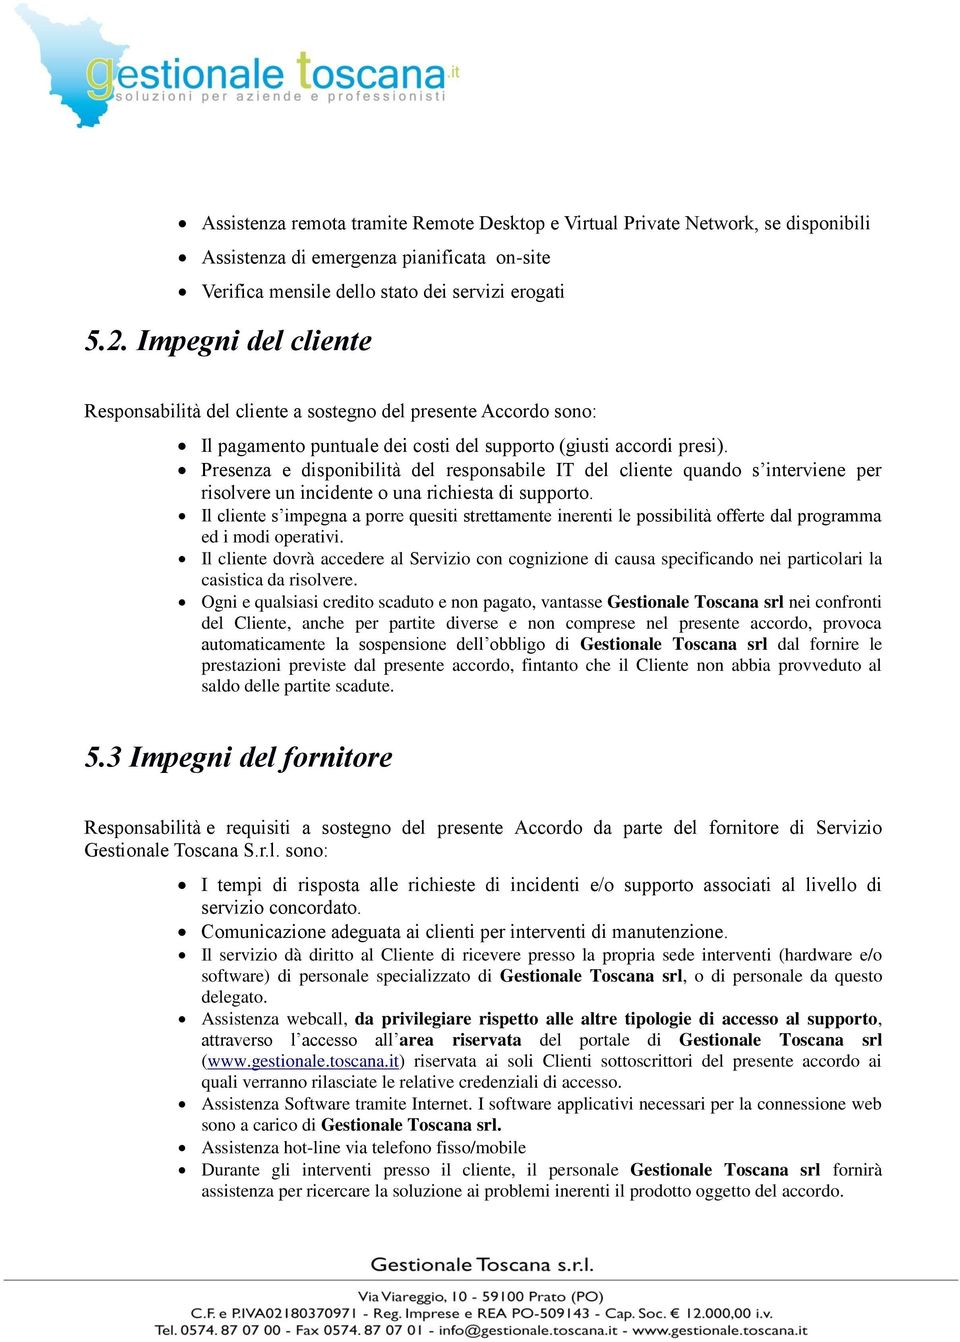 Presenza e disponibilità del responsabile IT del cliente quando s interviene per risolvere un incidente o una richiesta di supporto.